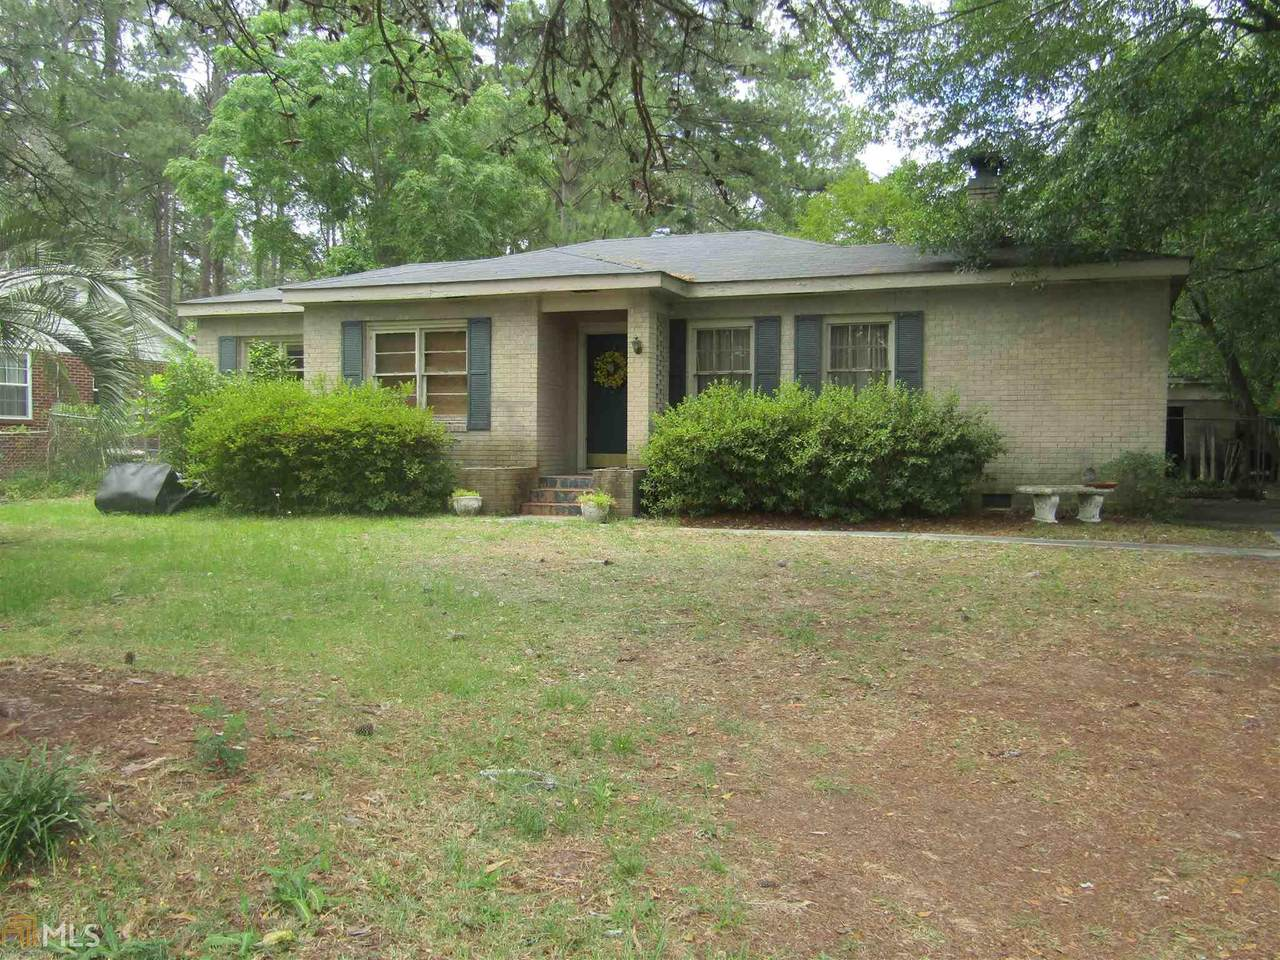 337 Jewell Dr - Photo 1